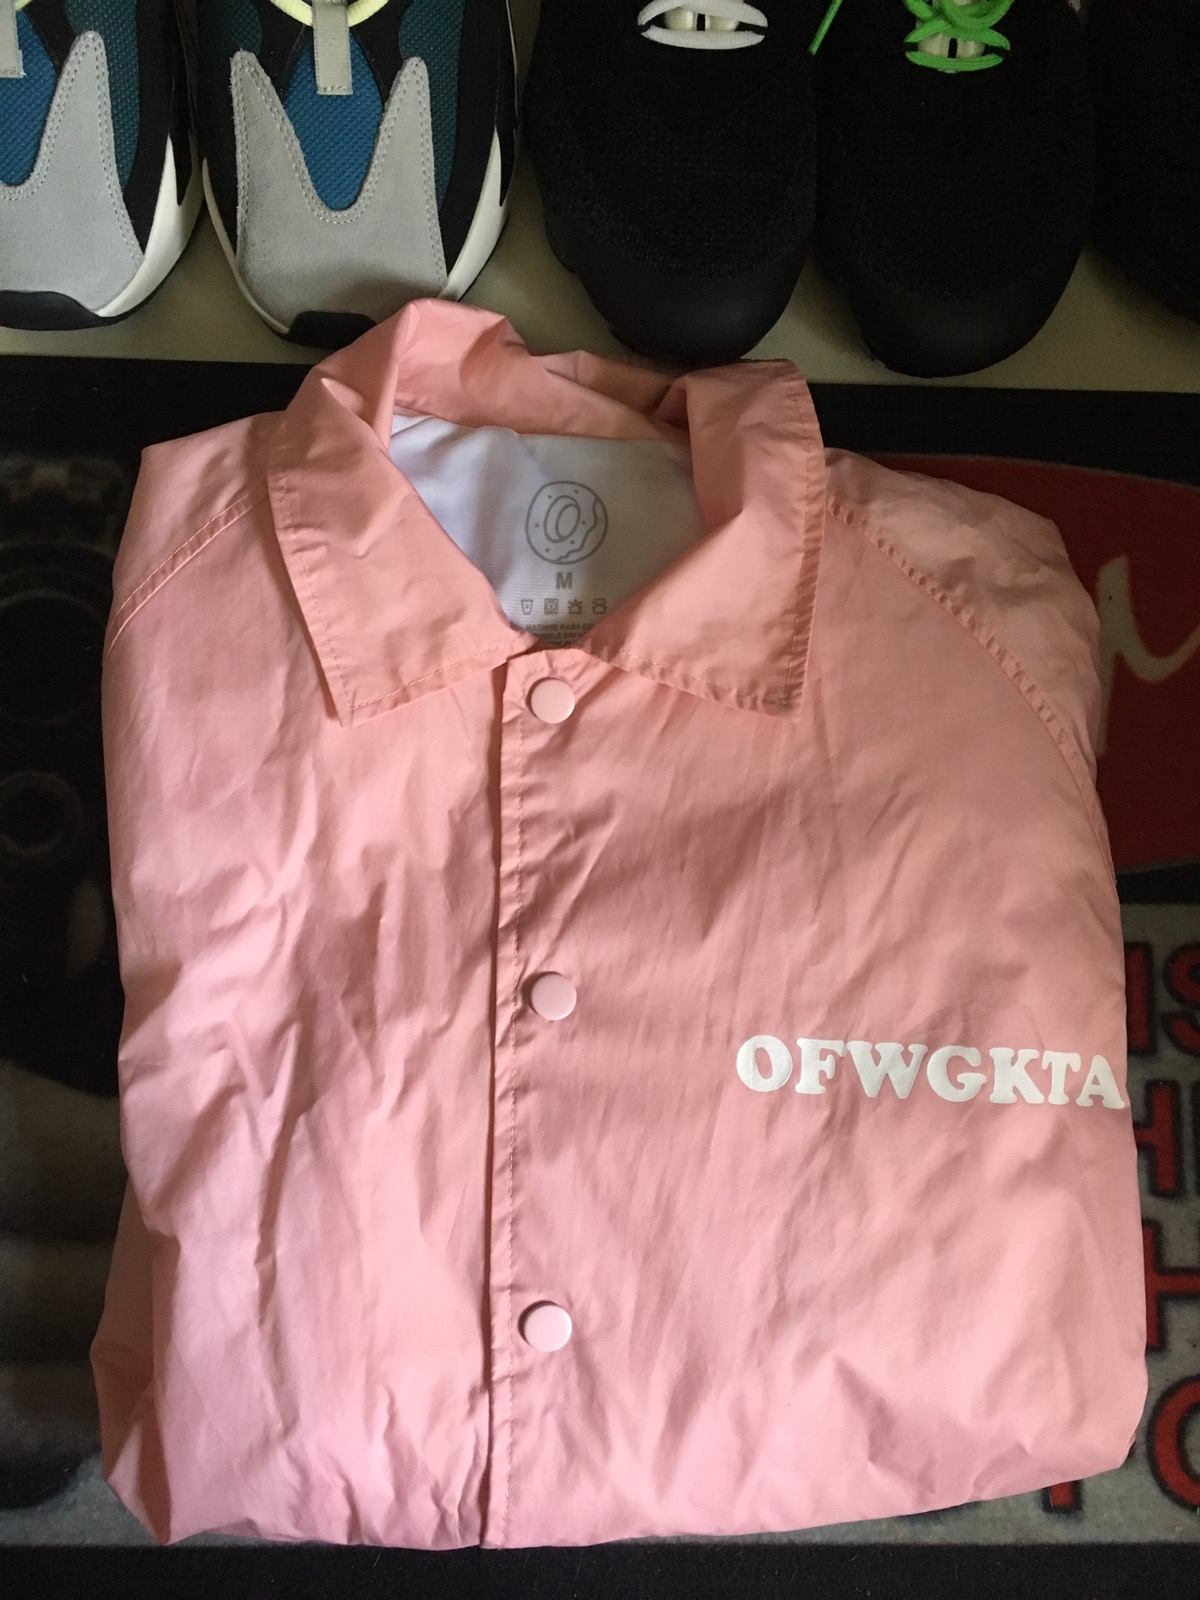 dc0fb4ef223a98 Odd Future OFWGKTA Pink Windbreaker Size m - Light Jackets for Sale -  Grailed